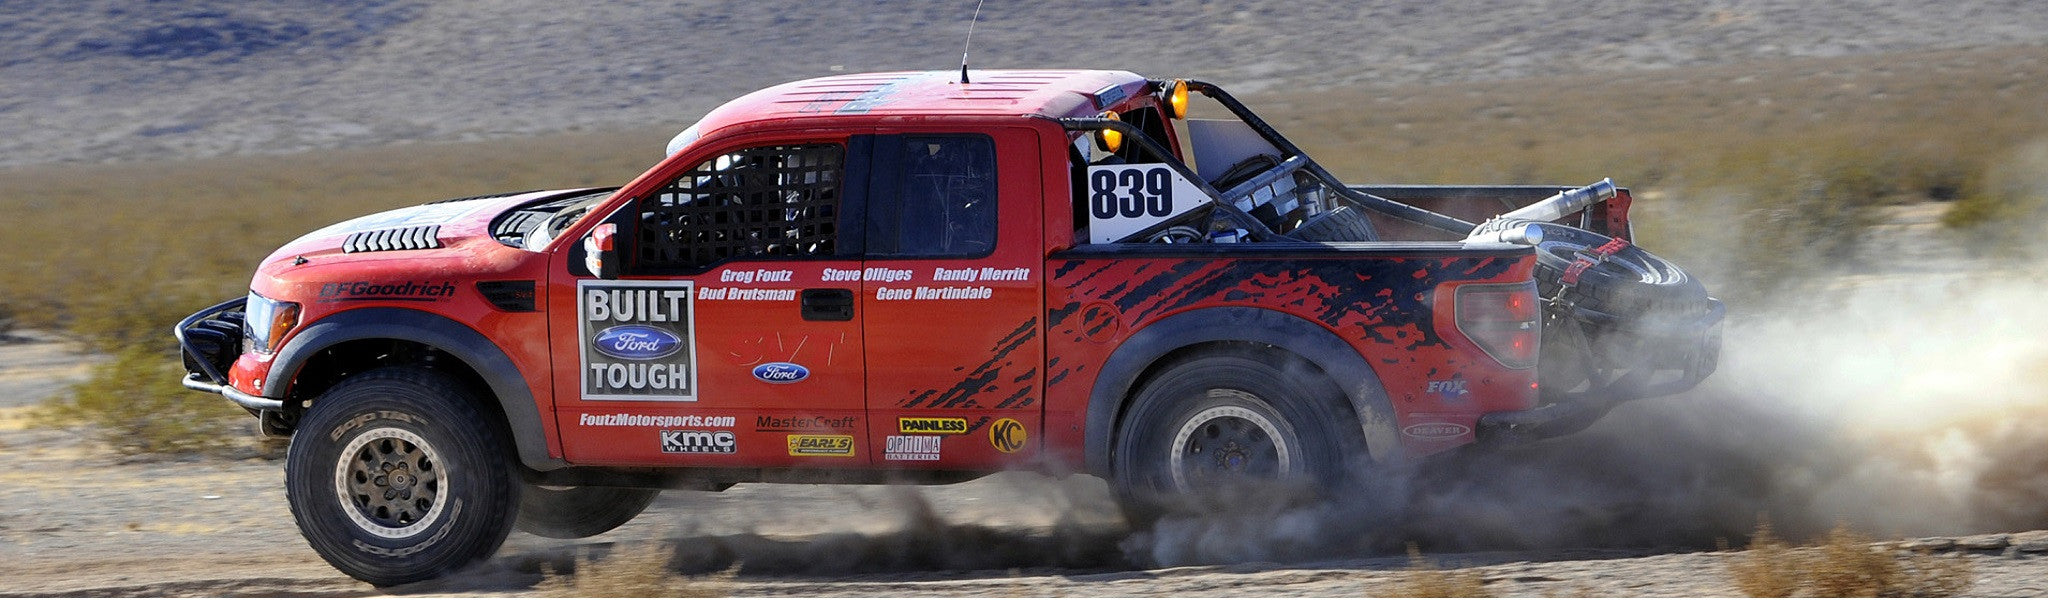 "The Ford Raptor ""R"" off-road race truck featured in the movie ""Raptor - Born in Baja"""